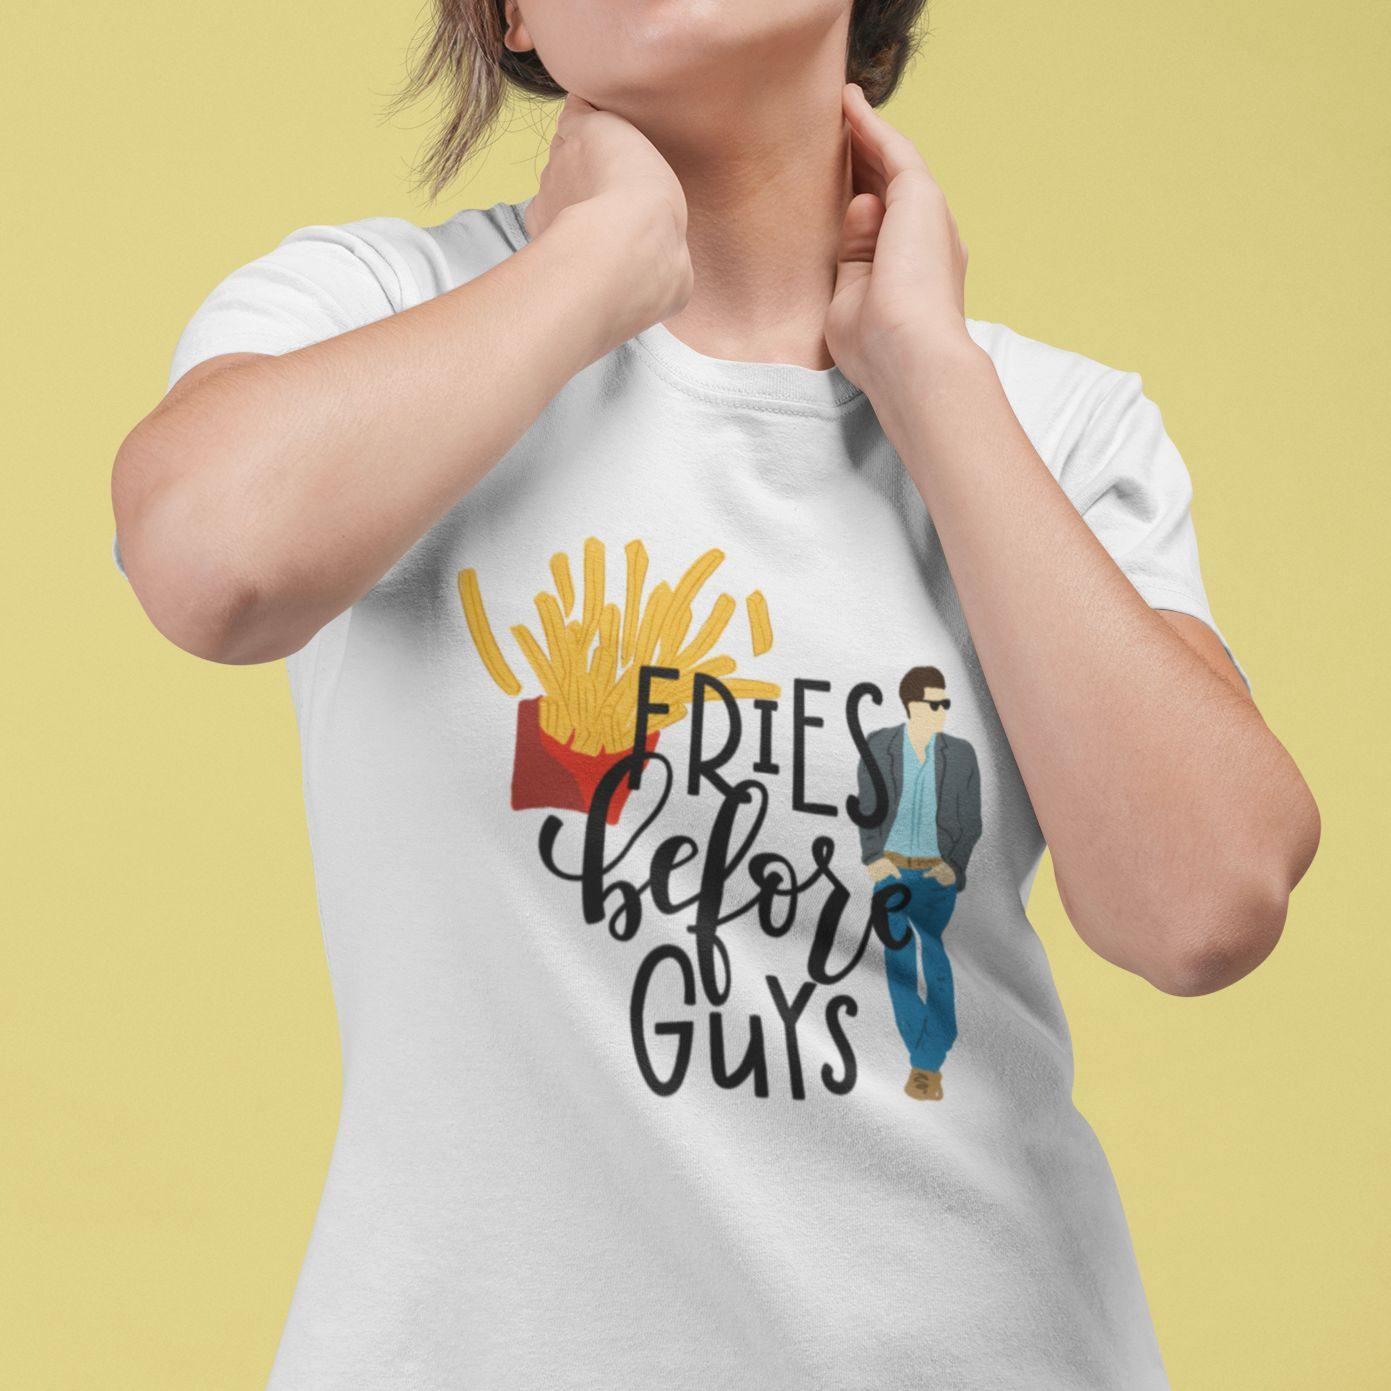 Fries Before Guys - Women's Tshirt - Daily Suvichar Store